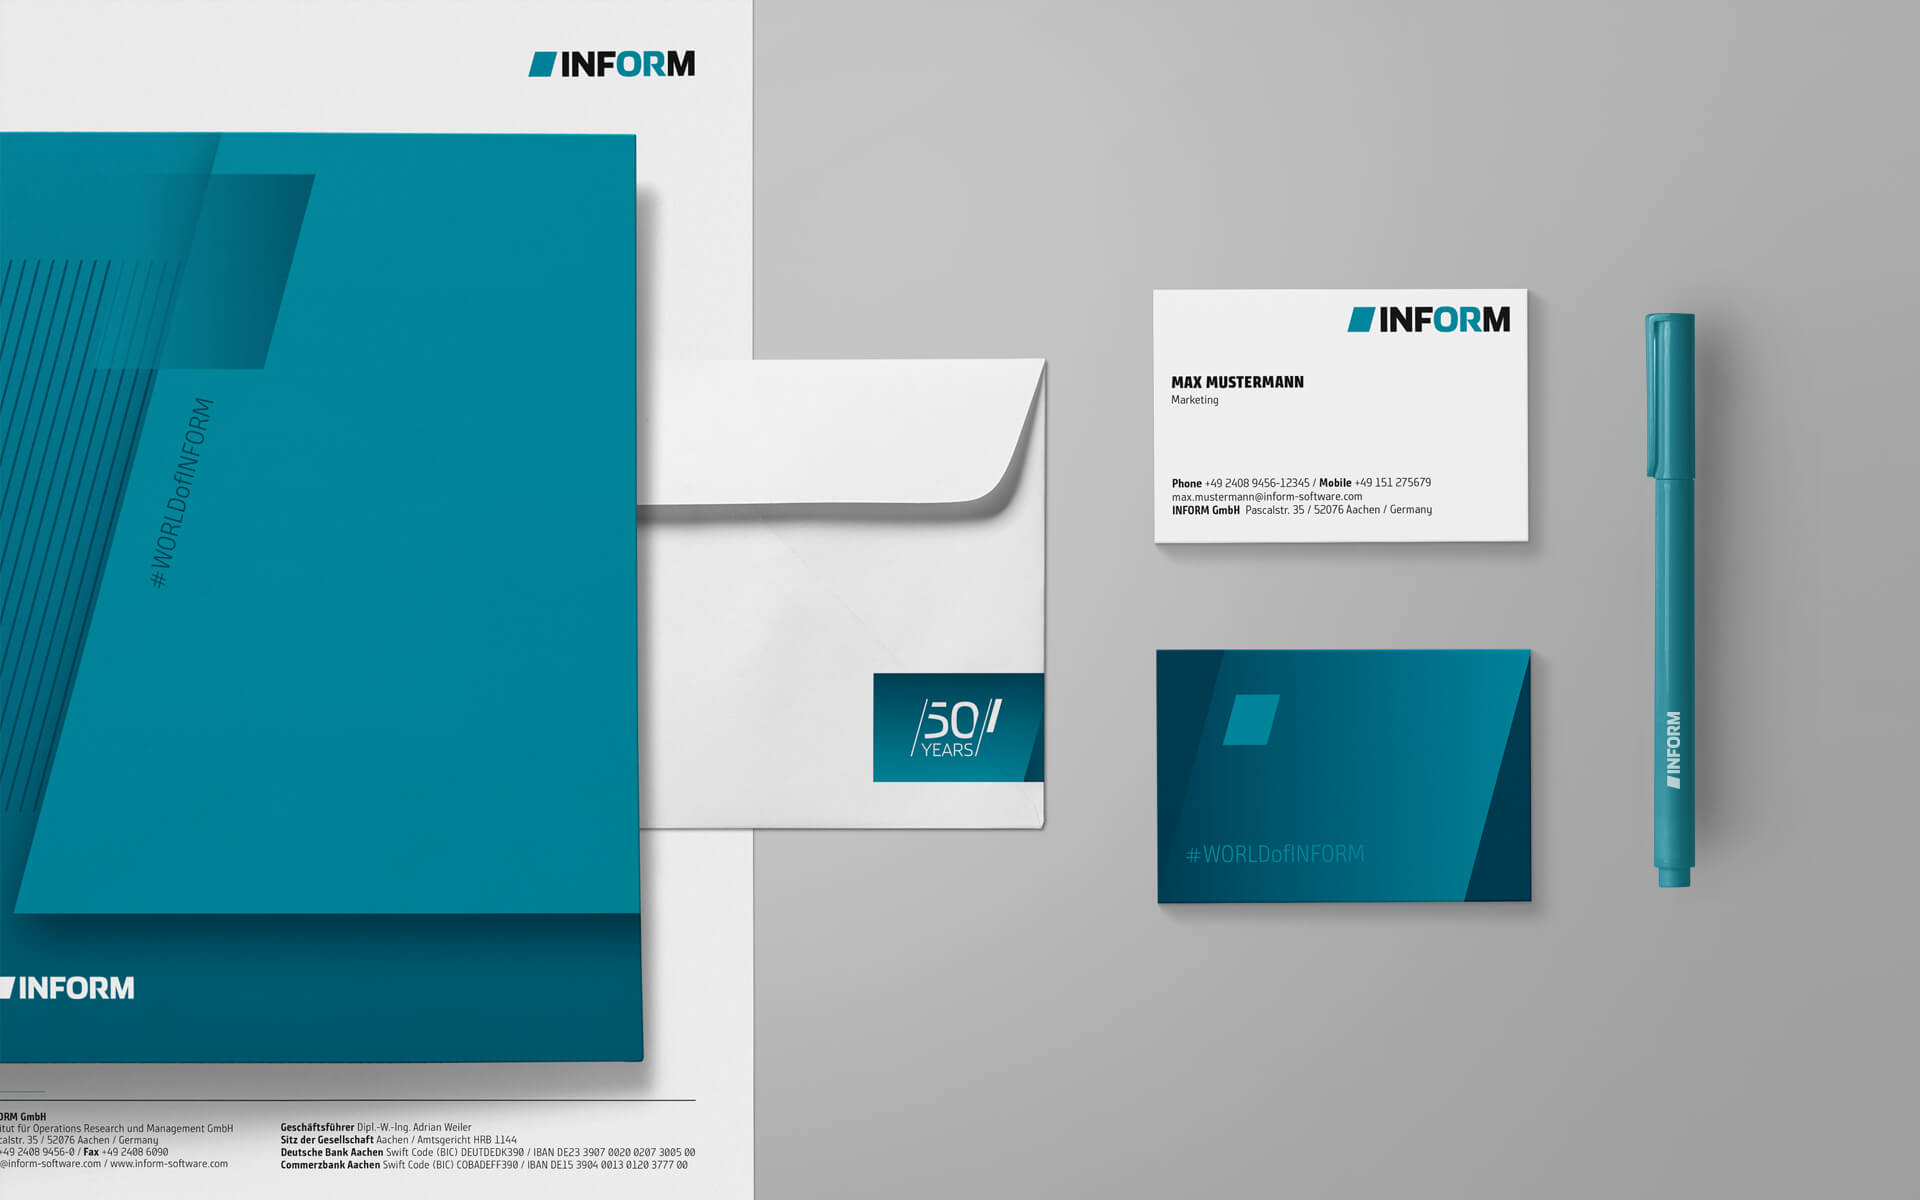 inform Corporate Design, Branding, Stationery items, Geschäftsausstattung